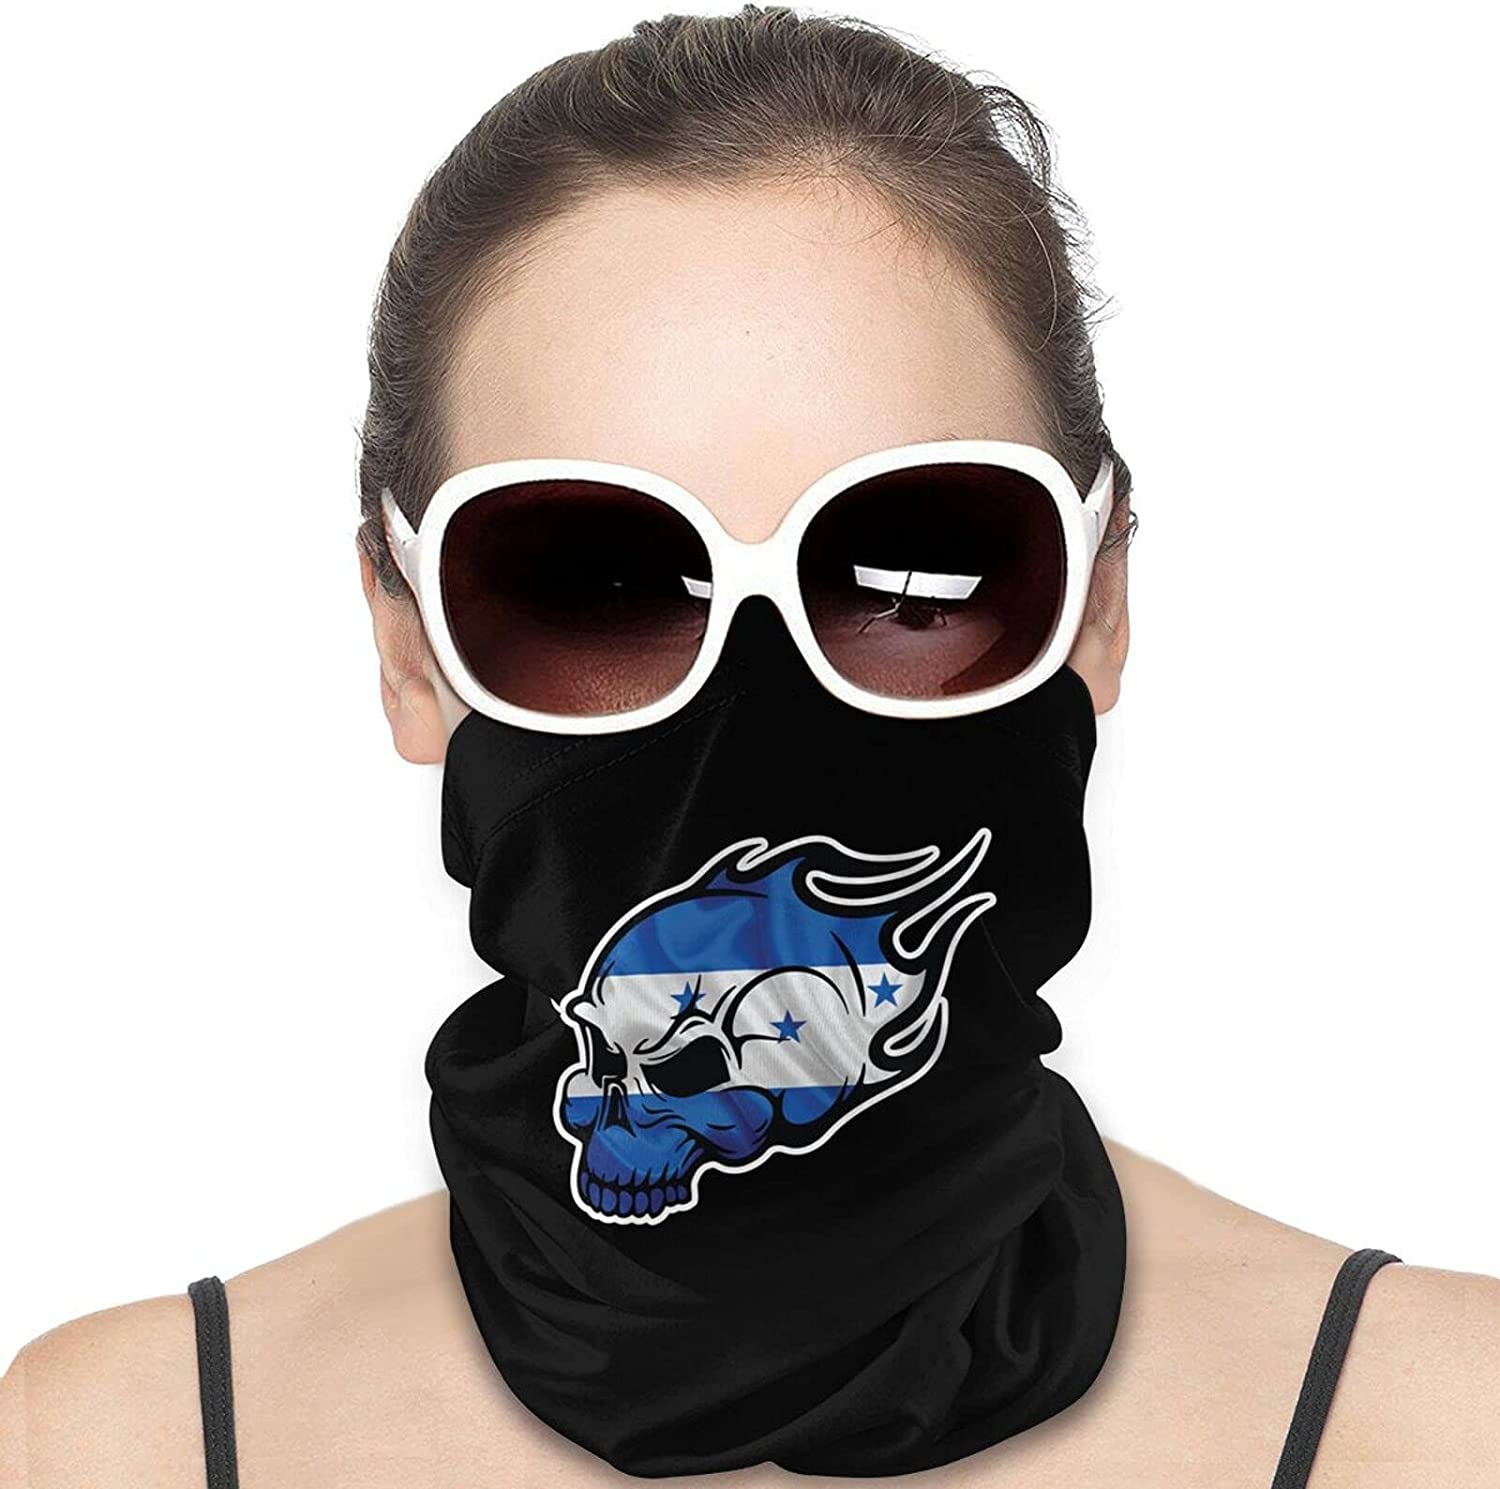 Honduras Flag Skull Round Neck Gaiter Bandnas Face Cover Uv Protection Prevent bask in Ice Scarf Headbands Perfect for Motorcycle Cycling Running Festival Raves Outdoors